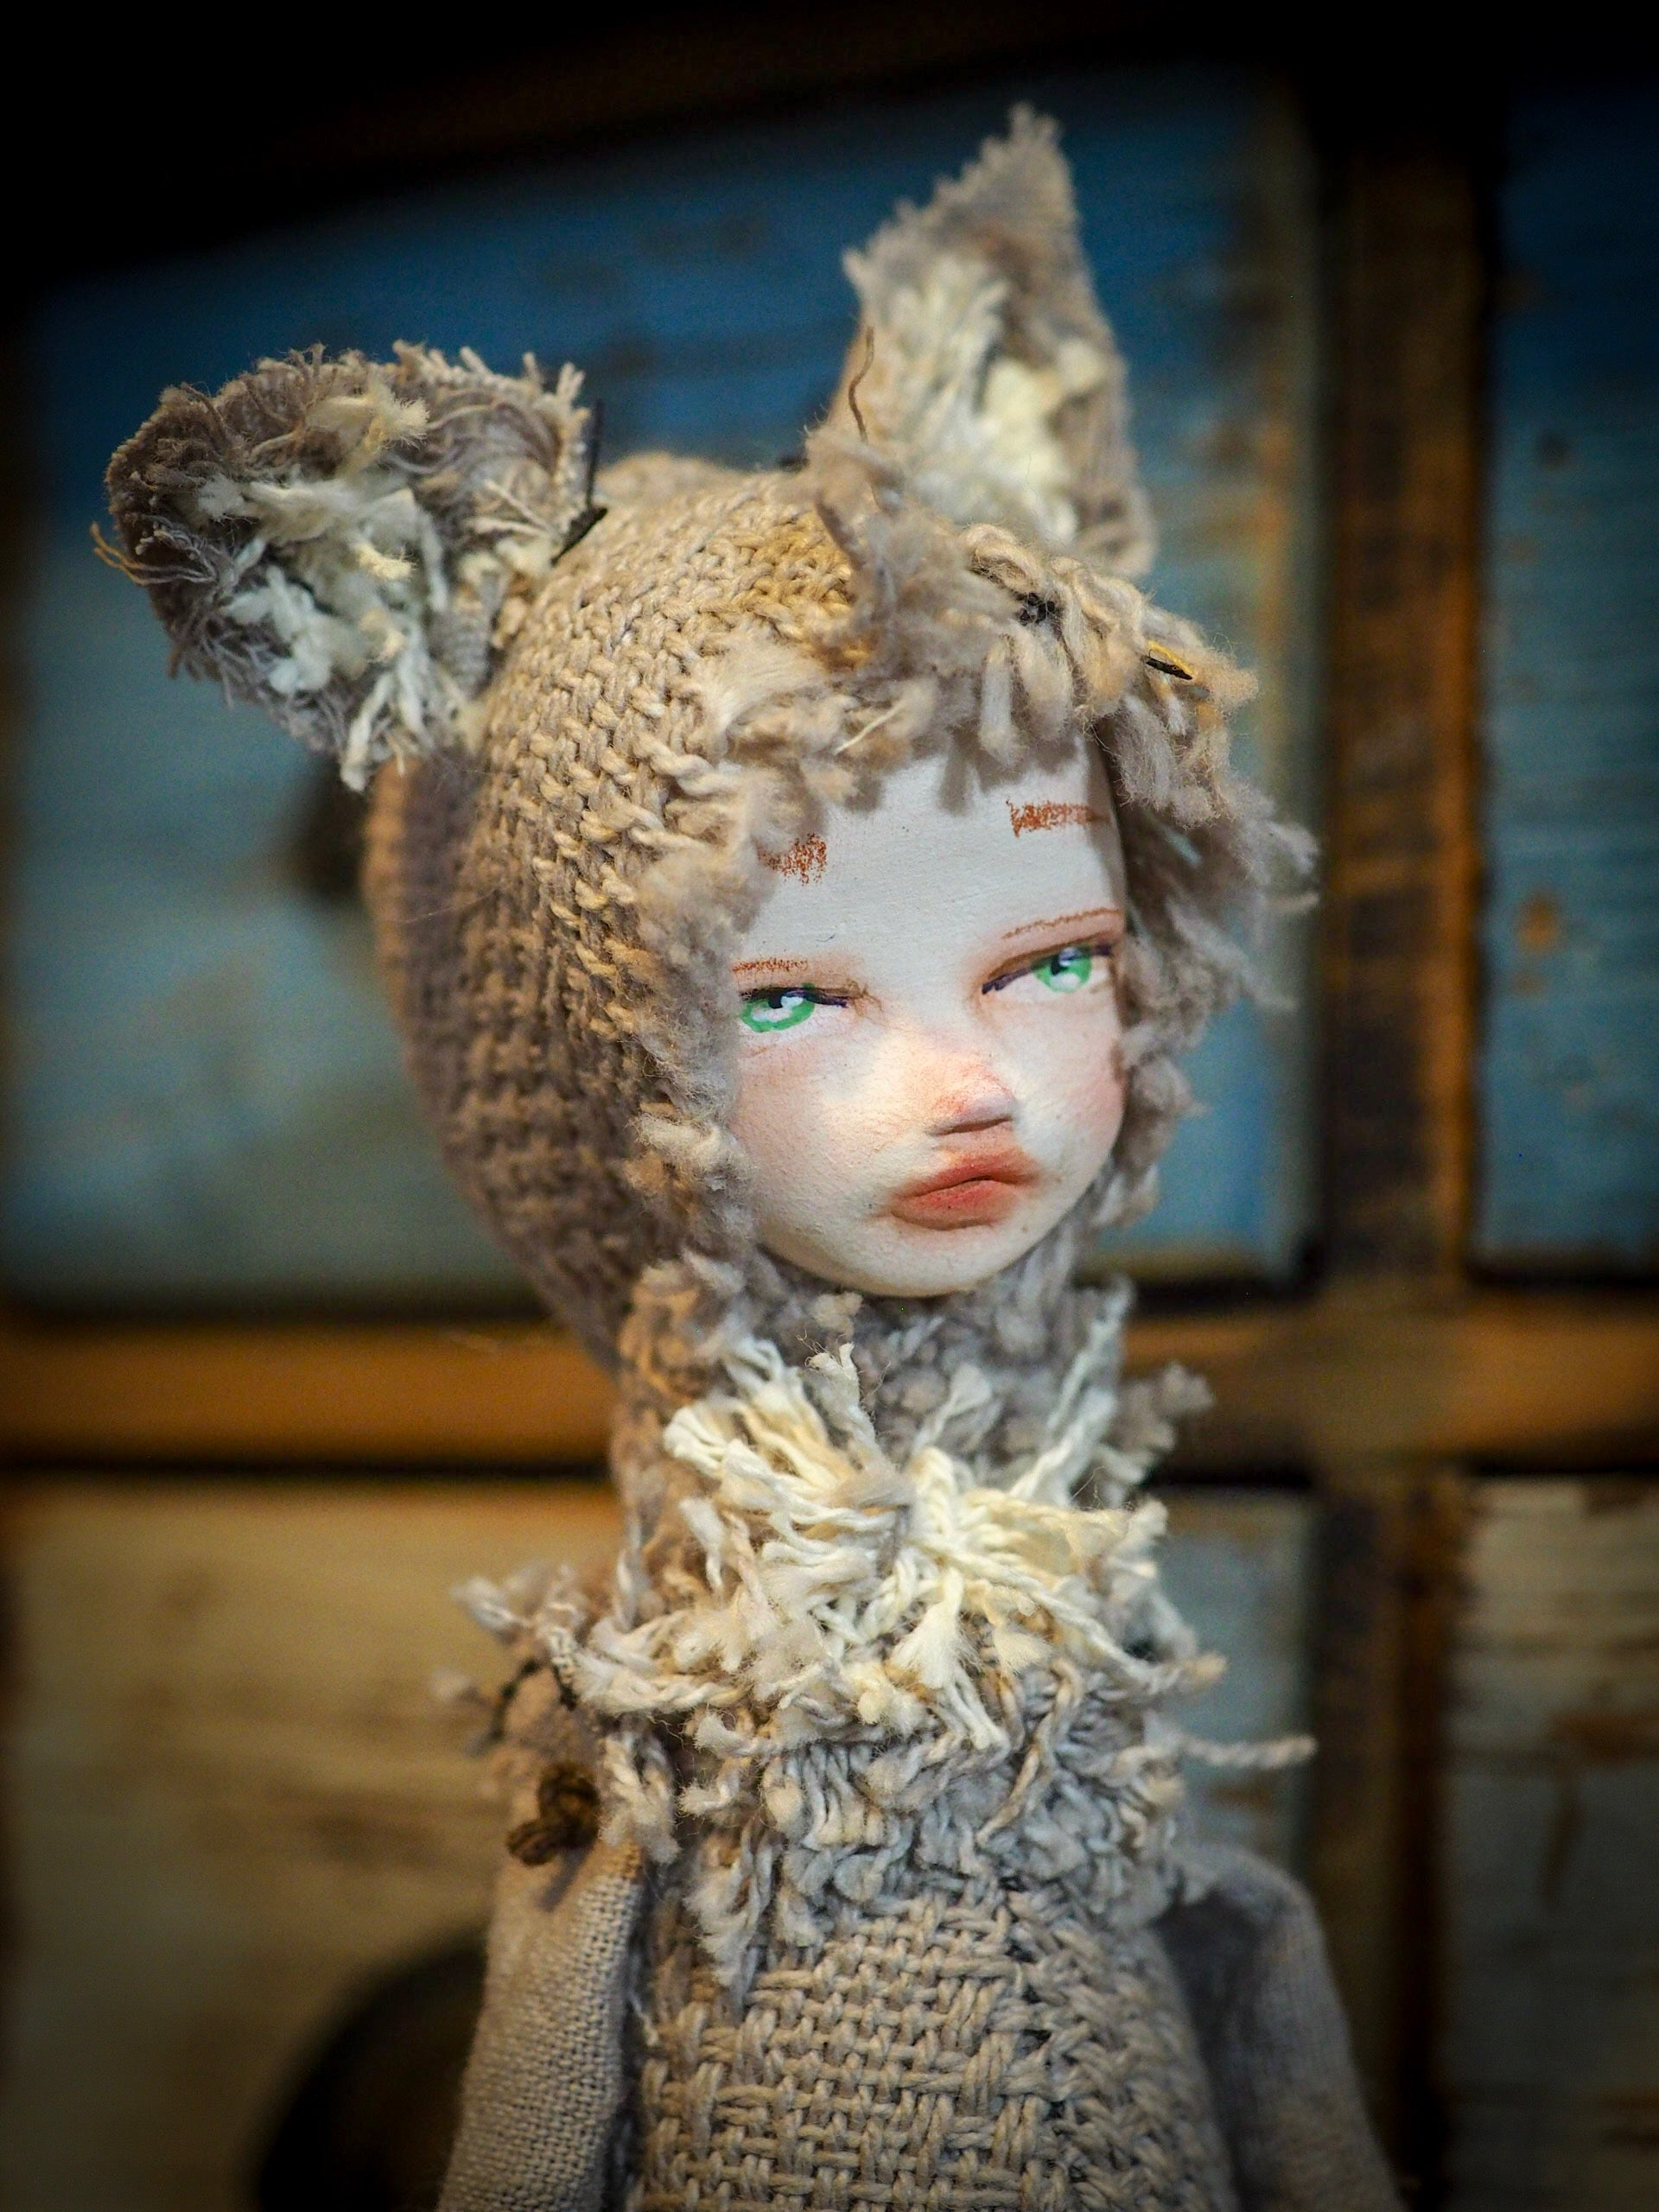 THE WOLF - An original handmade doll by Danita Art, made with original patterns, organic fabric dyed using only natural ingredients like avocado peels, walnuts and marigolds. Each mini art doll in this toy collection is a mini work of huggable fabric art to be treasured by any collector of Danita's melancholic and fantastic work.